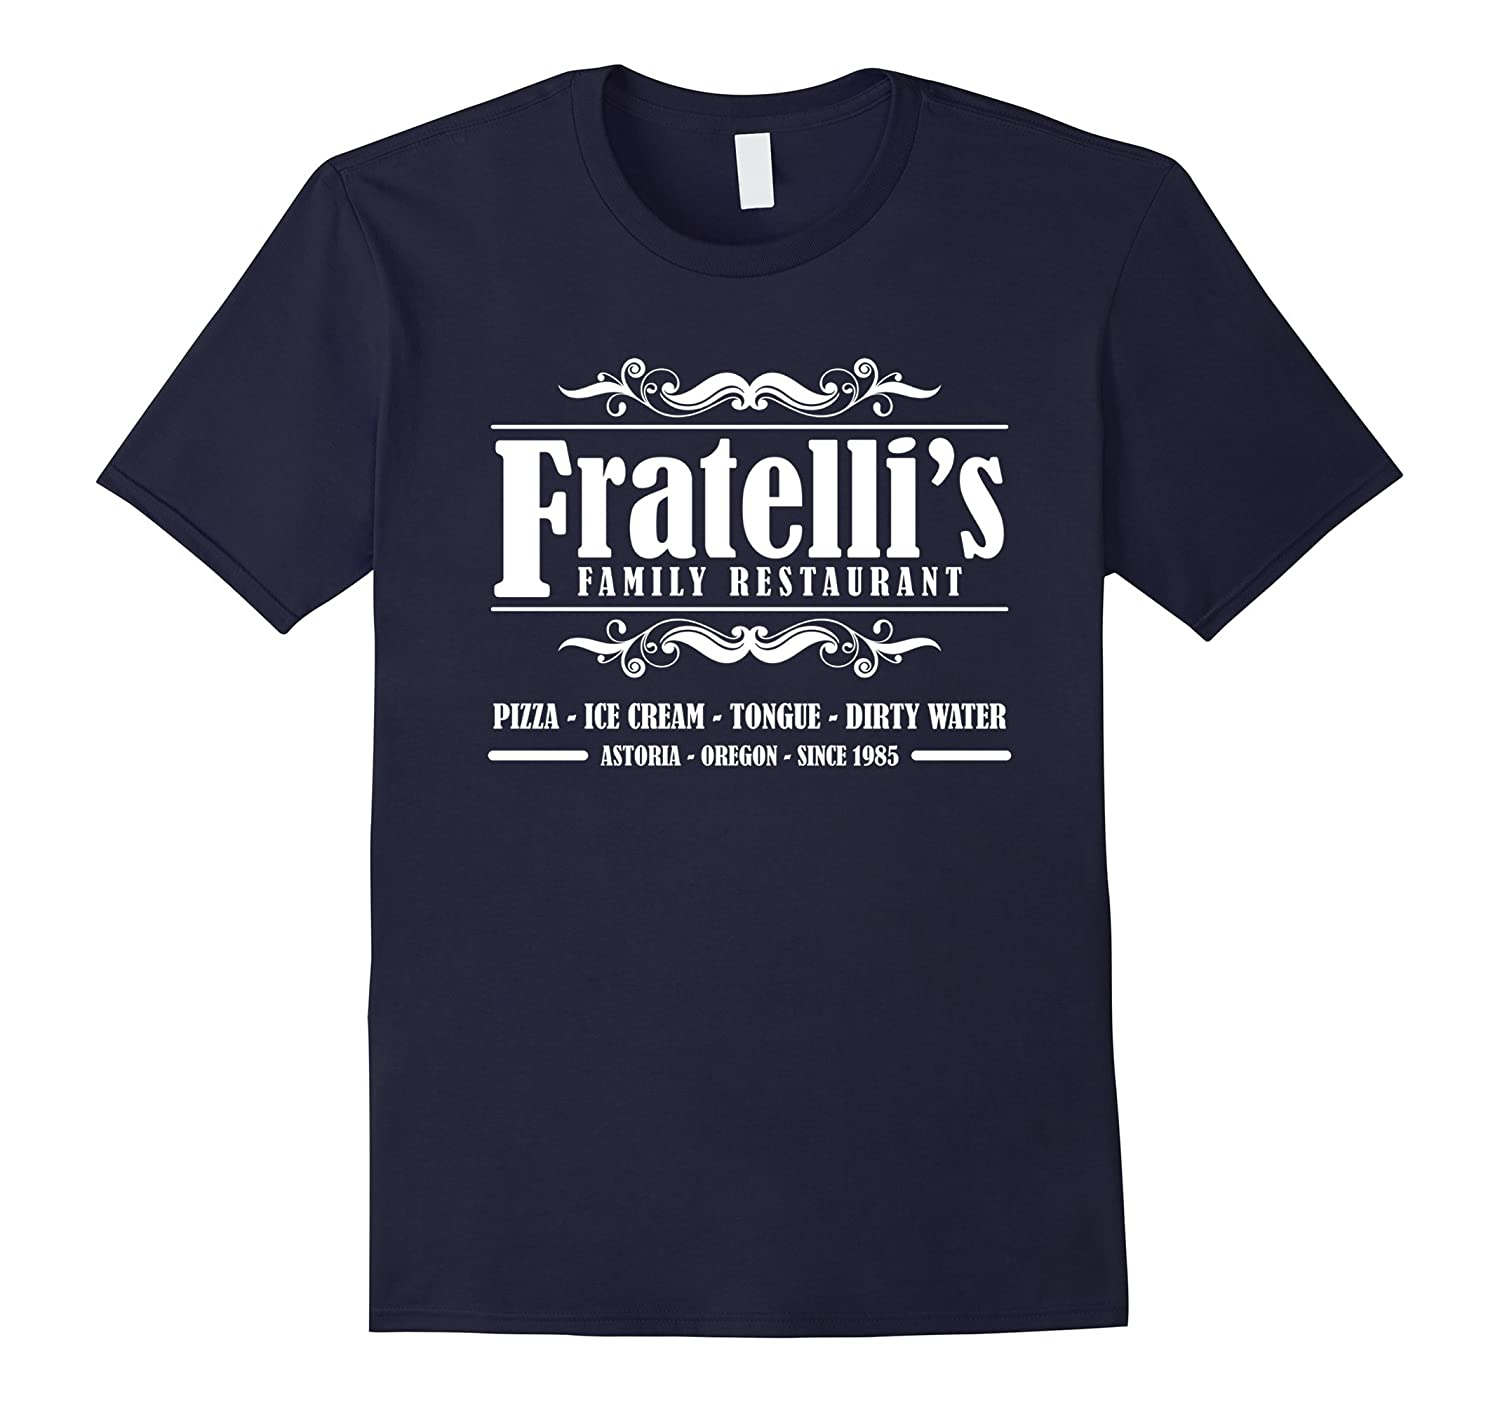 Fratellis Family Restaurant Shirt Medium-Tovacu